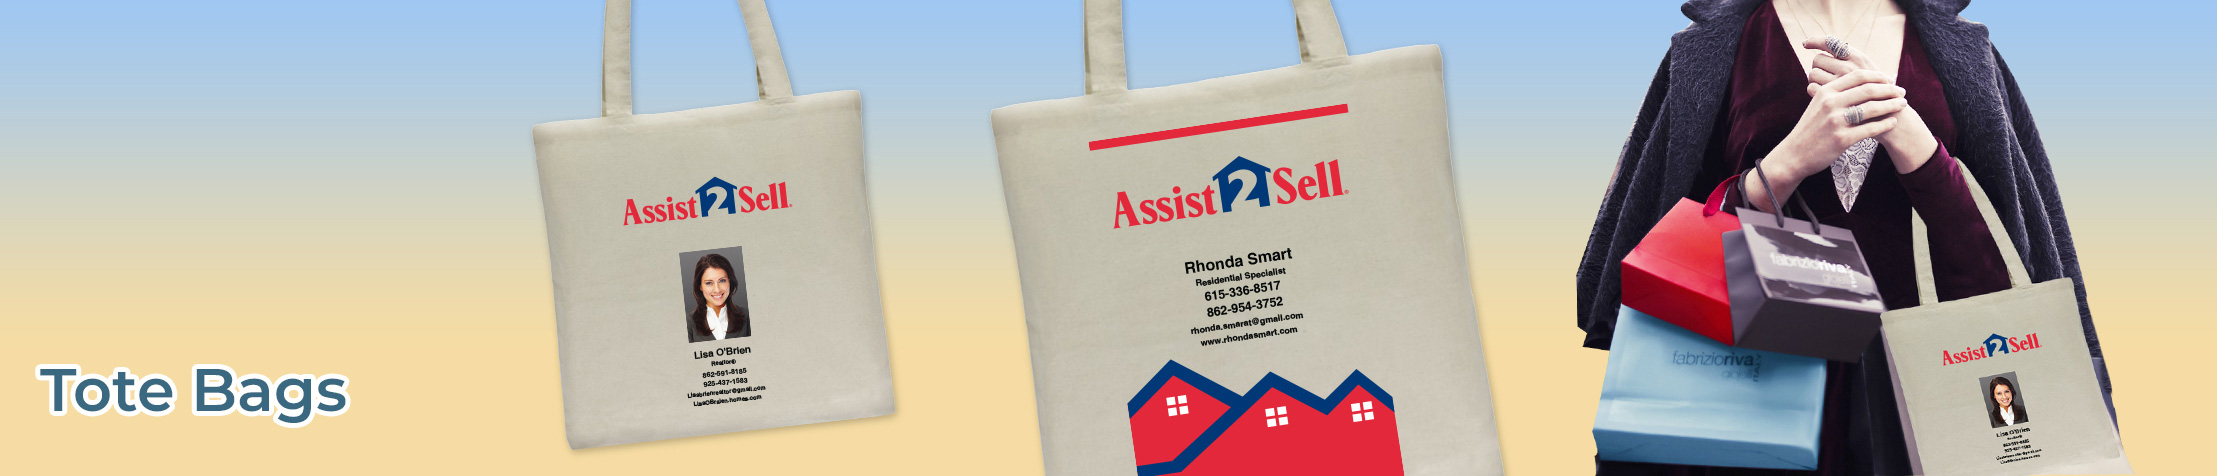 Assit2Sell Real Estate Tote Bags - Assit2Sell Real Estate  personalized realtor promotional products | BestPrintBuy.com